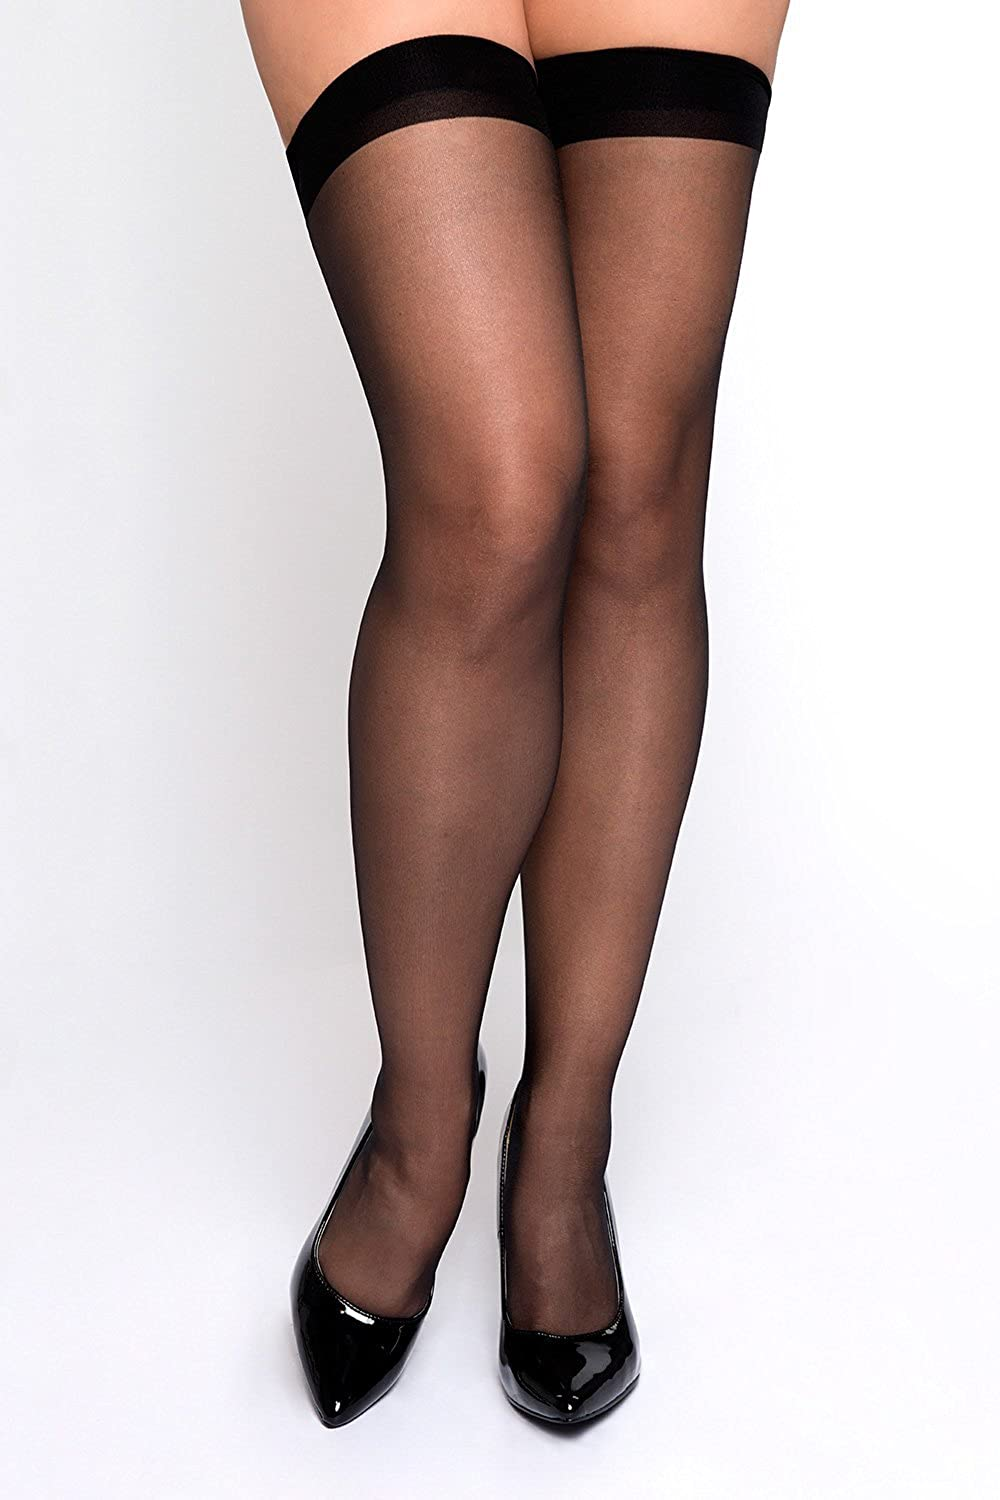 PARK AVENUE Sheer Nylon Stockings with Back Seam Queen Size